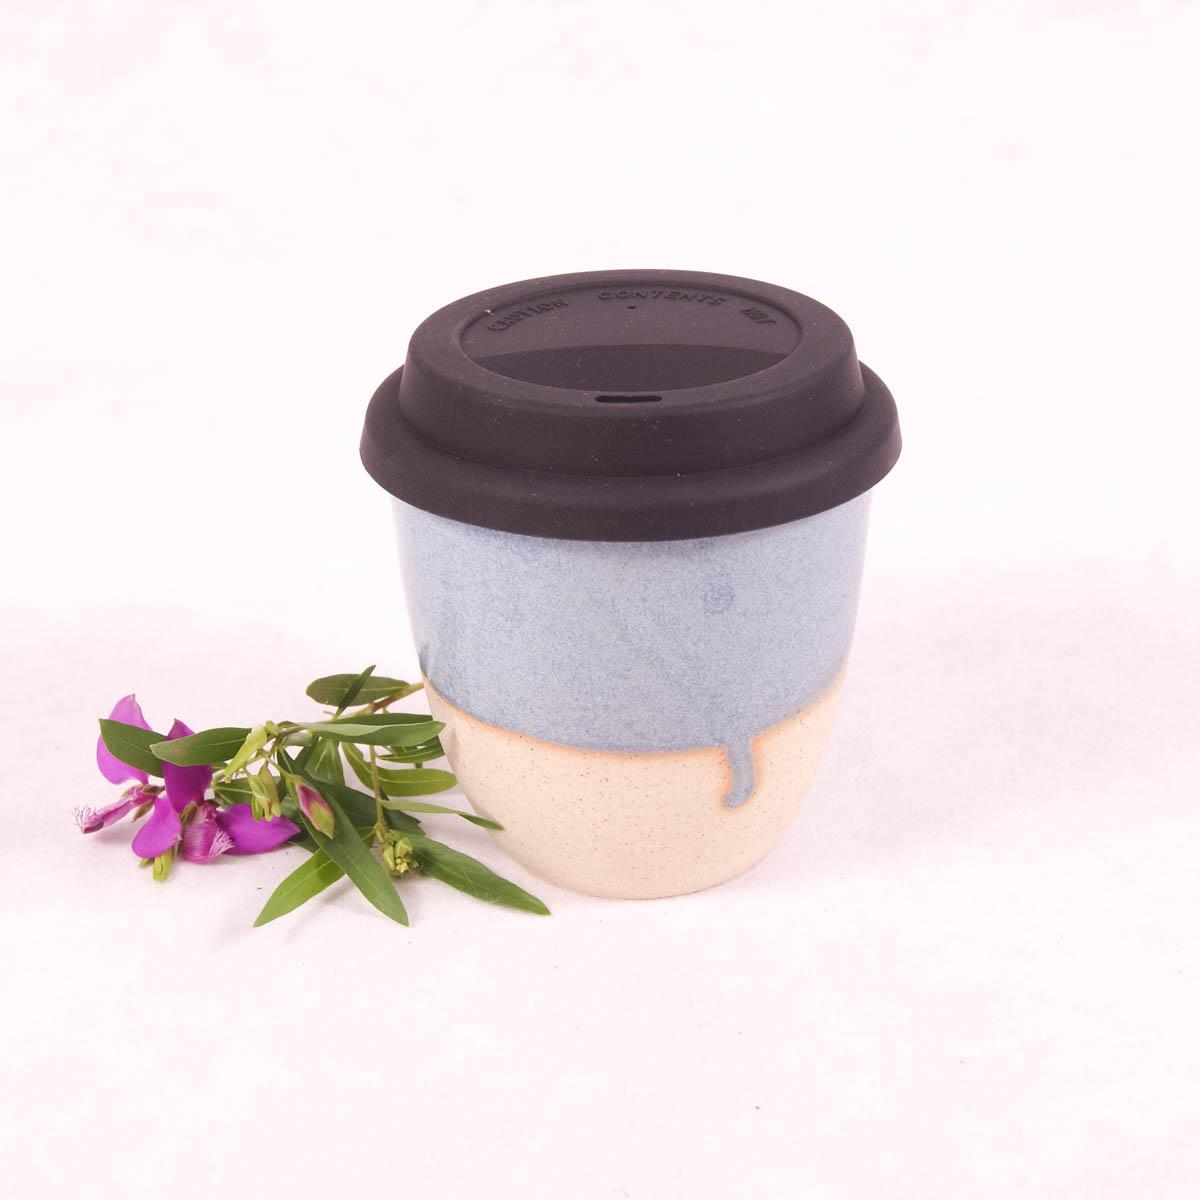 Ceramic Travel Cup Small - Ocean Blue - Travel Cup - Throw Some Seeds - Australian gardening gifts and eco products online!